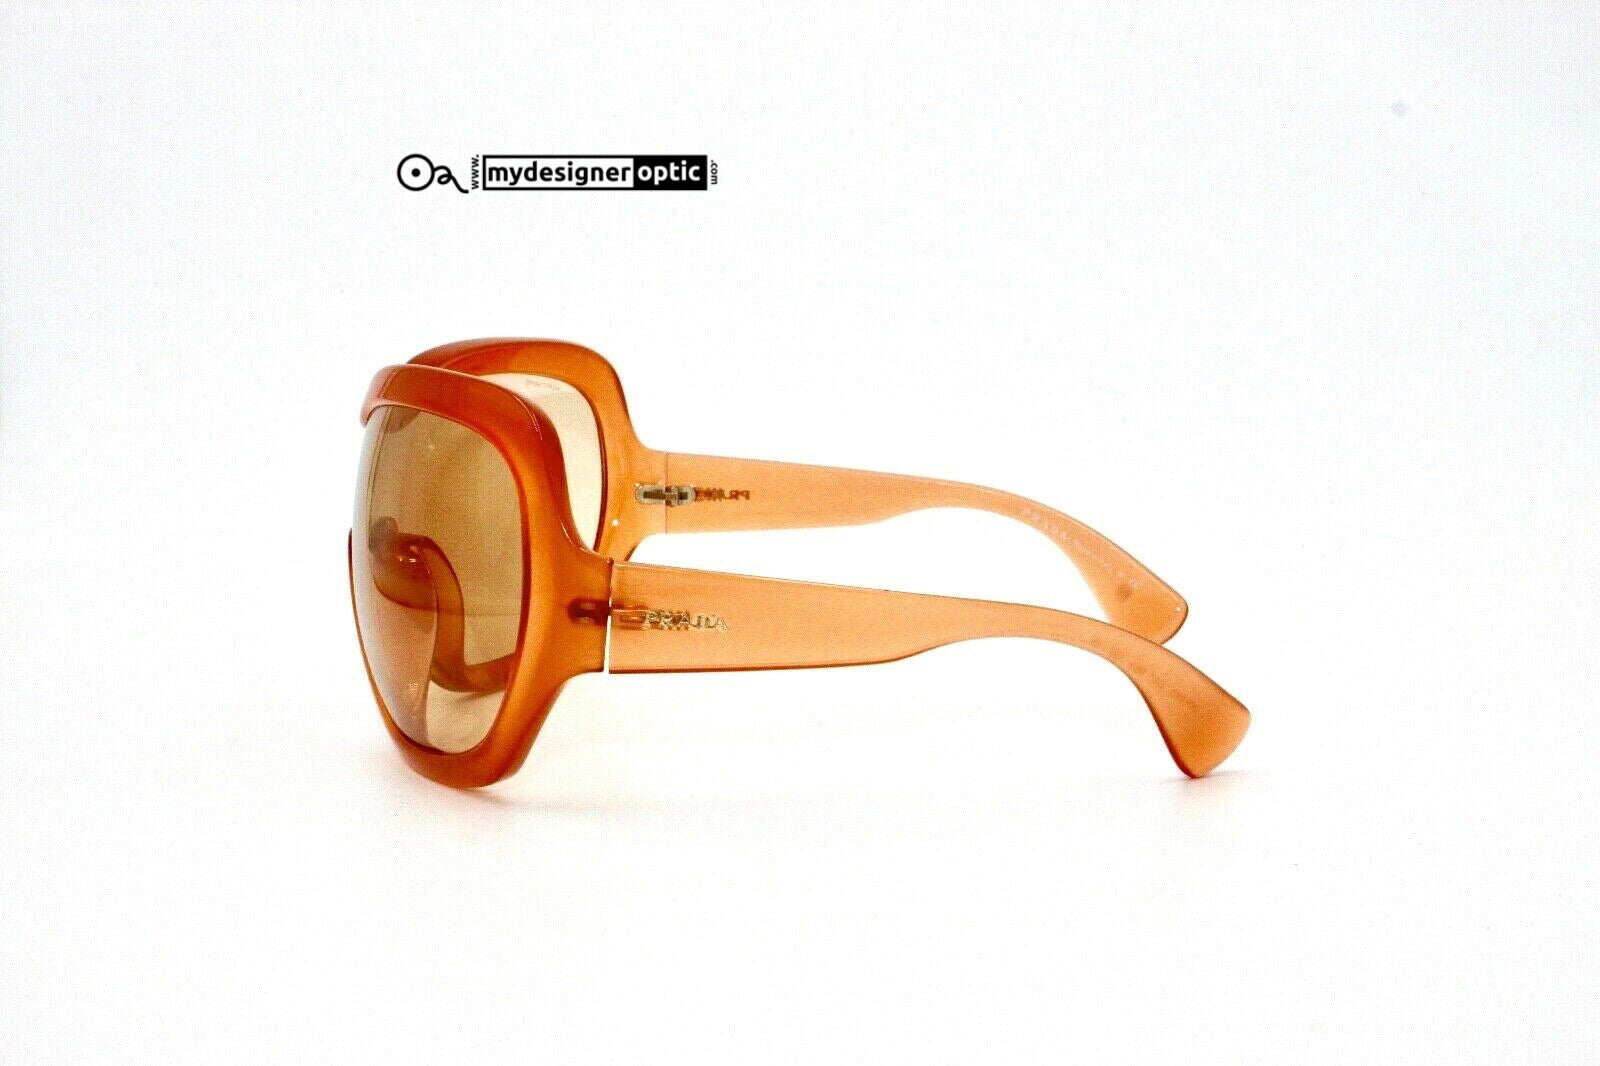 Prada Sunglasses SPR 05O GAC-9N1 120 1N SP9477934 Made in Italy - Mydesigneroptic